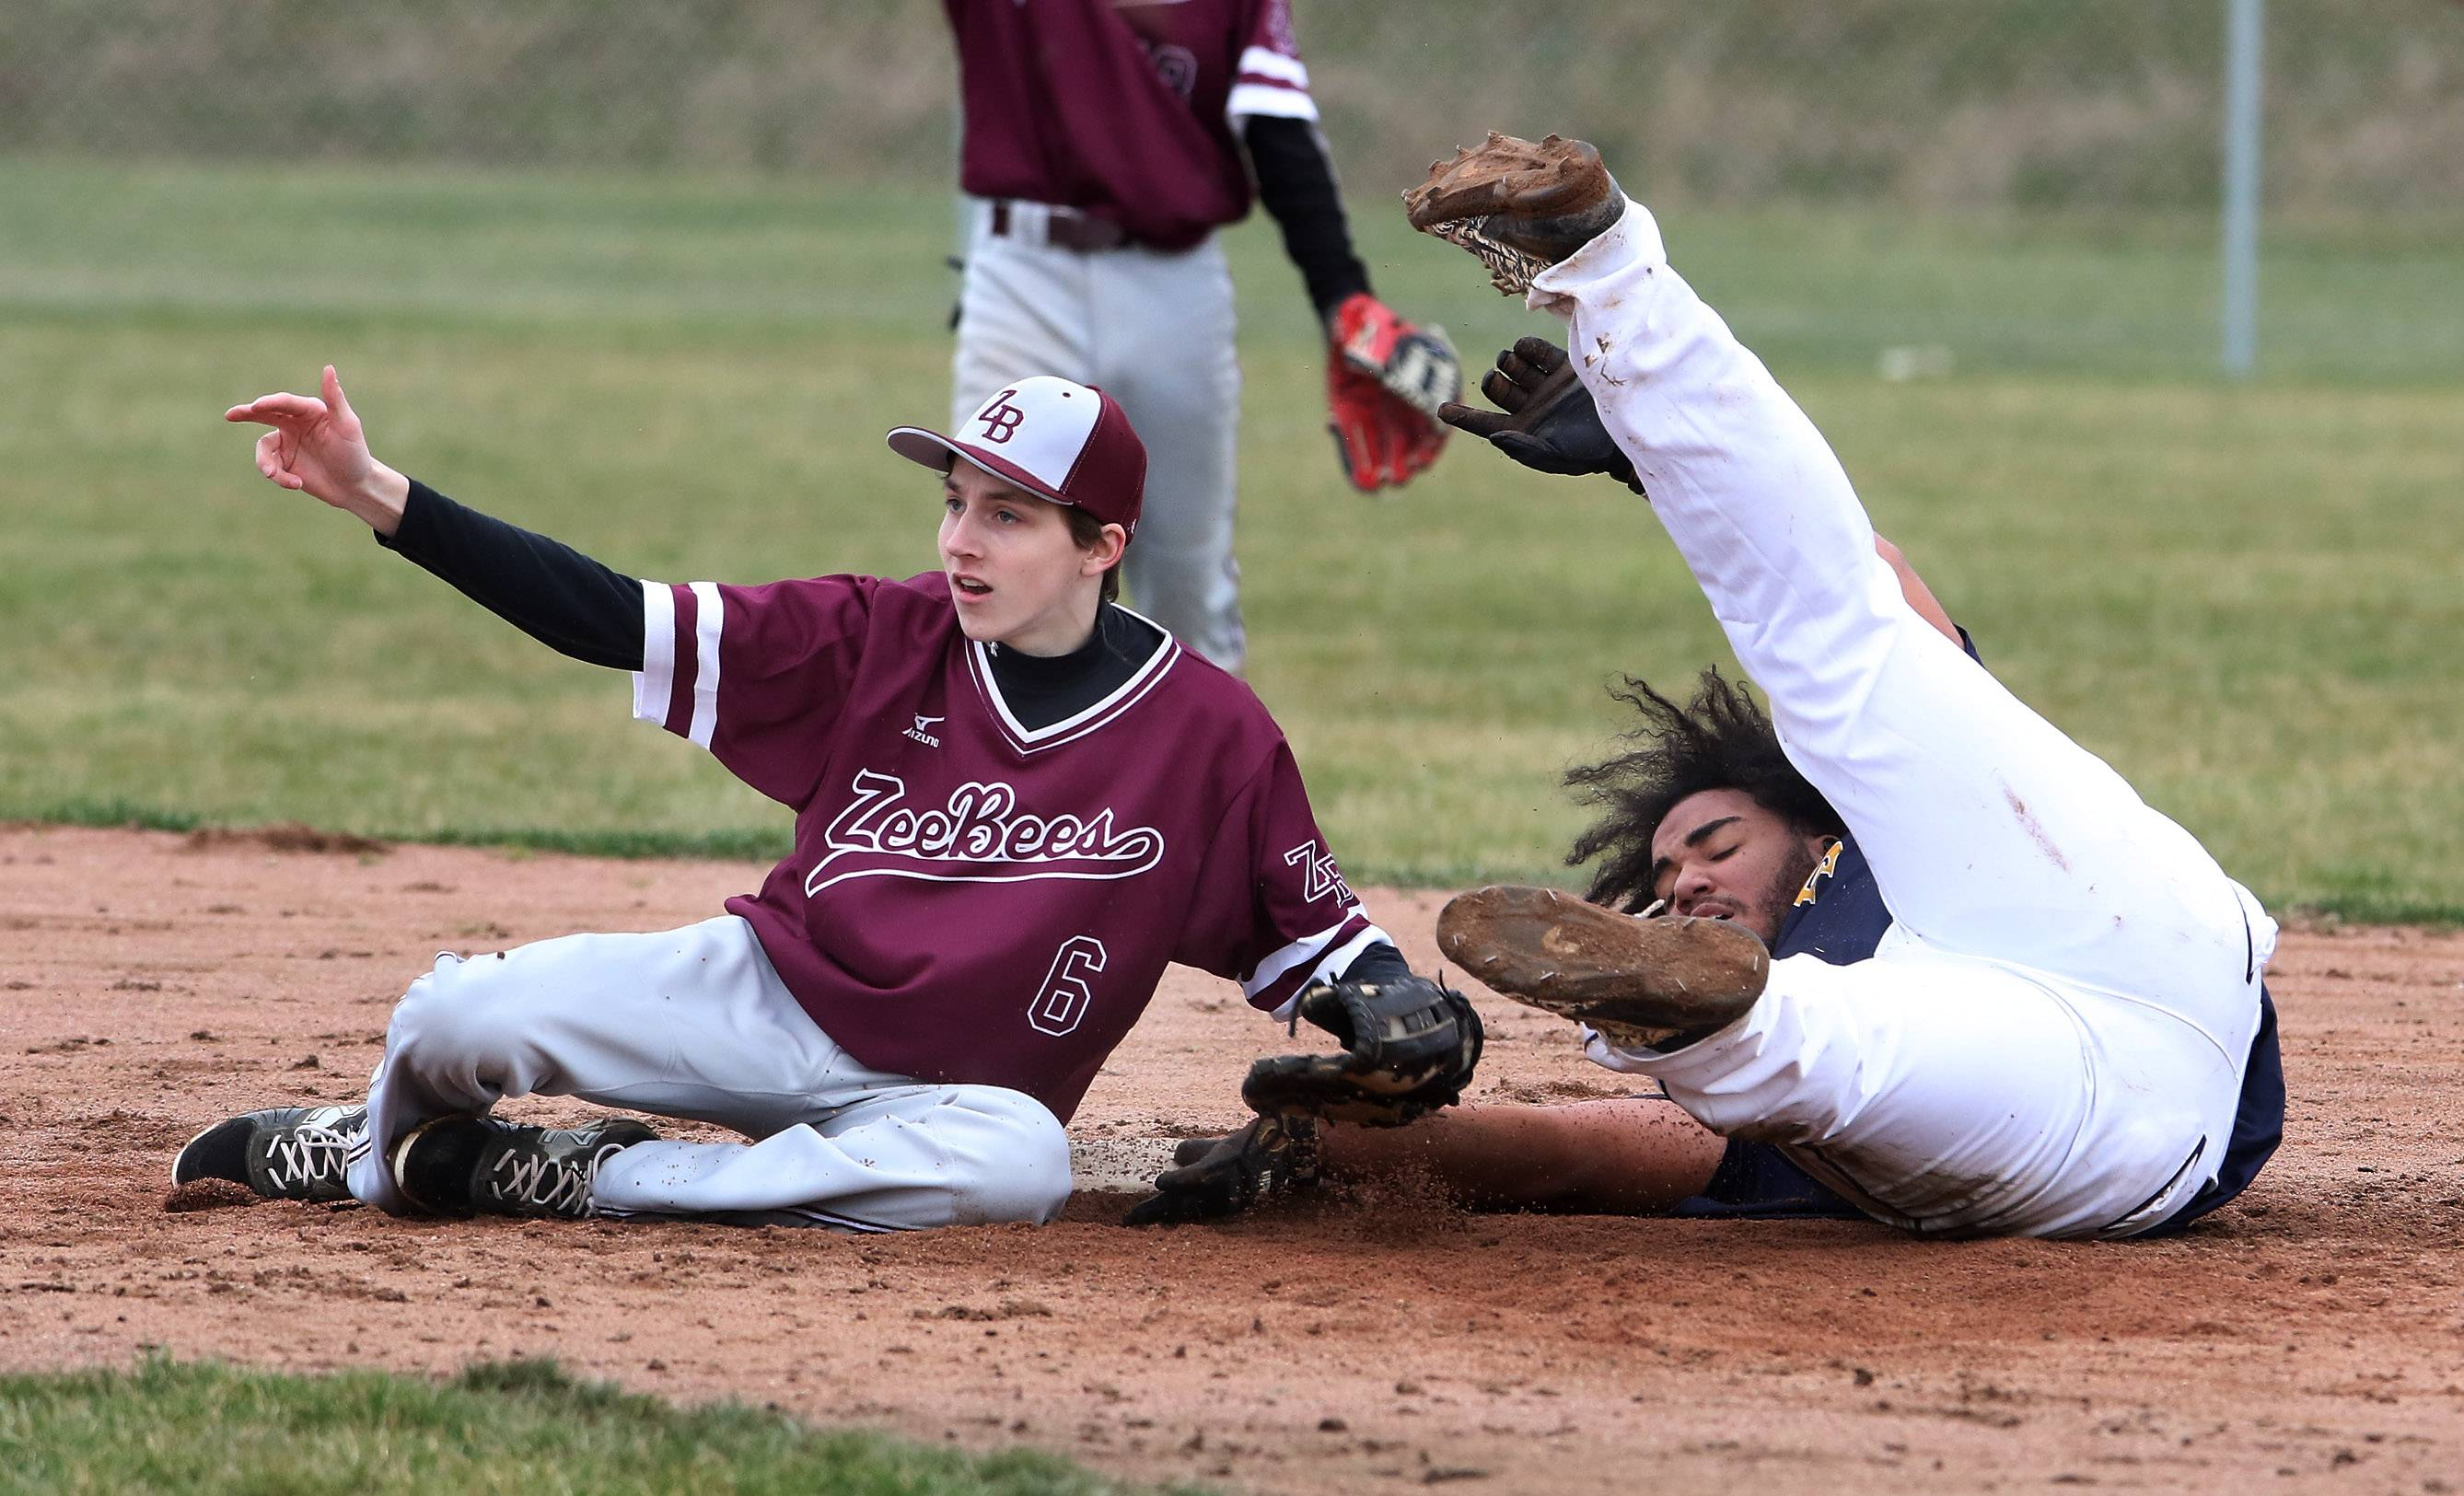 Zion-Benton second baseman Ryan Green tags out Round Lake's Amadeus Pope after he tried to extend a hit into a double in the second inning Wednesday at Round Lake High School.